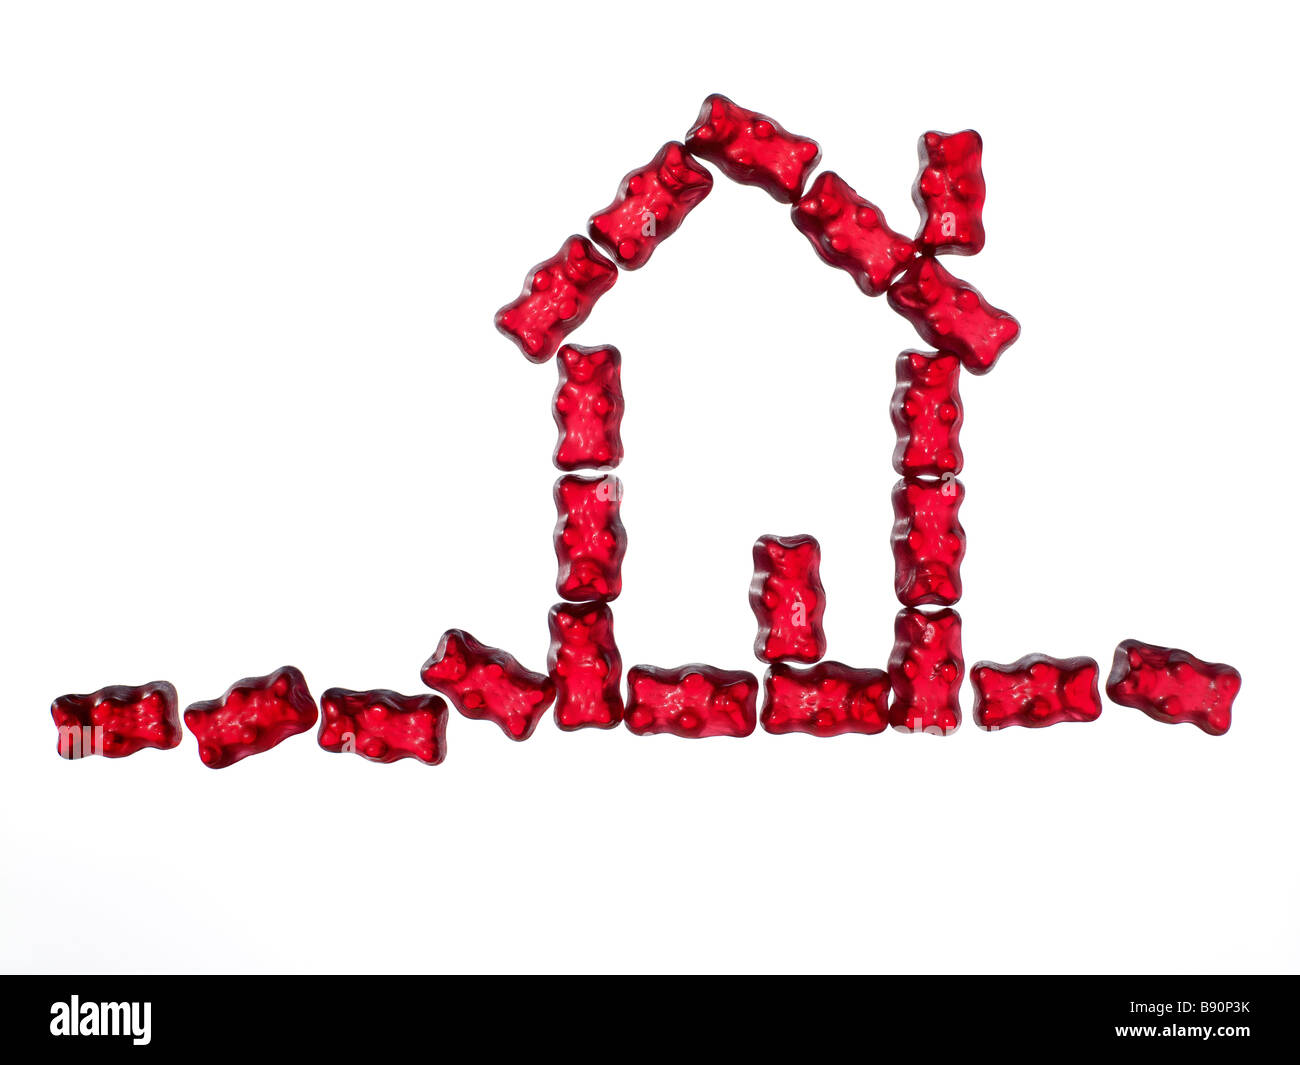 red jellybabies formed as a house on white background - Stock Image